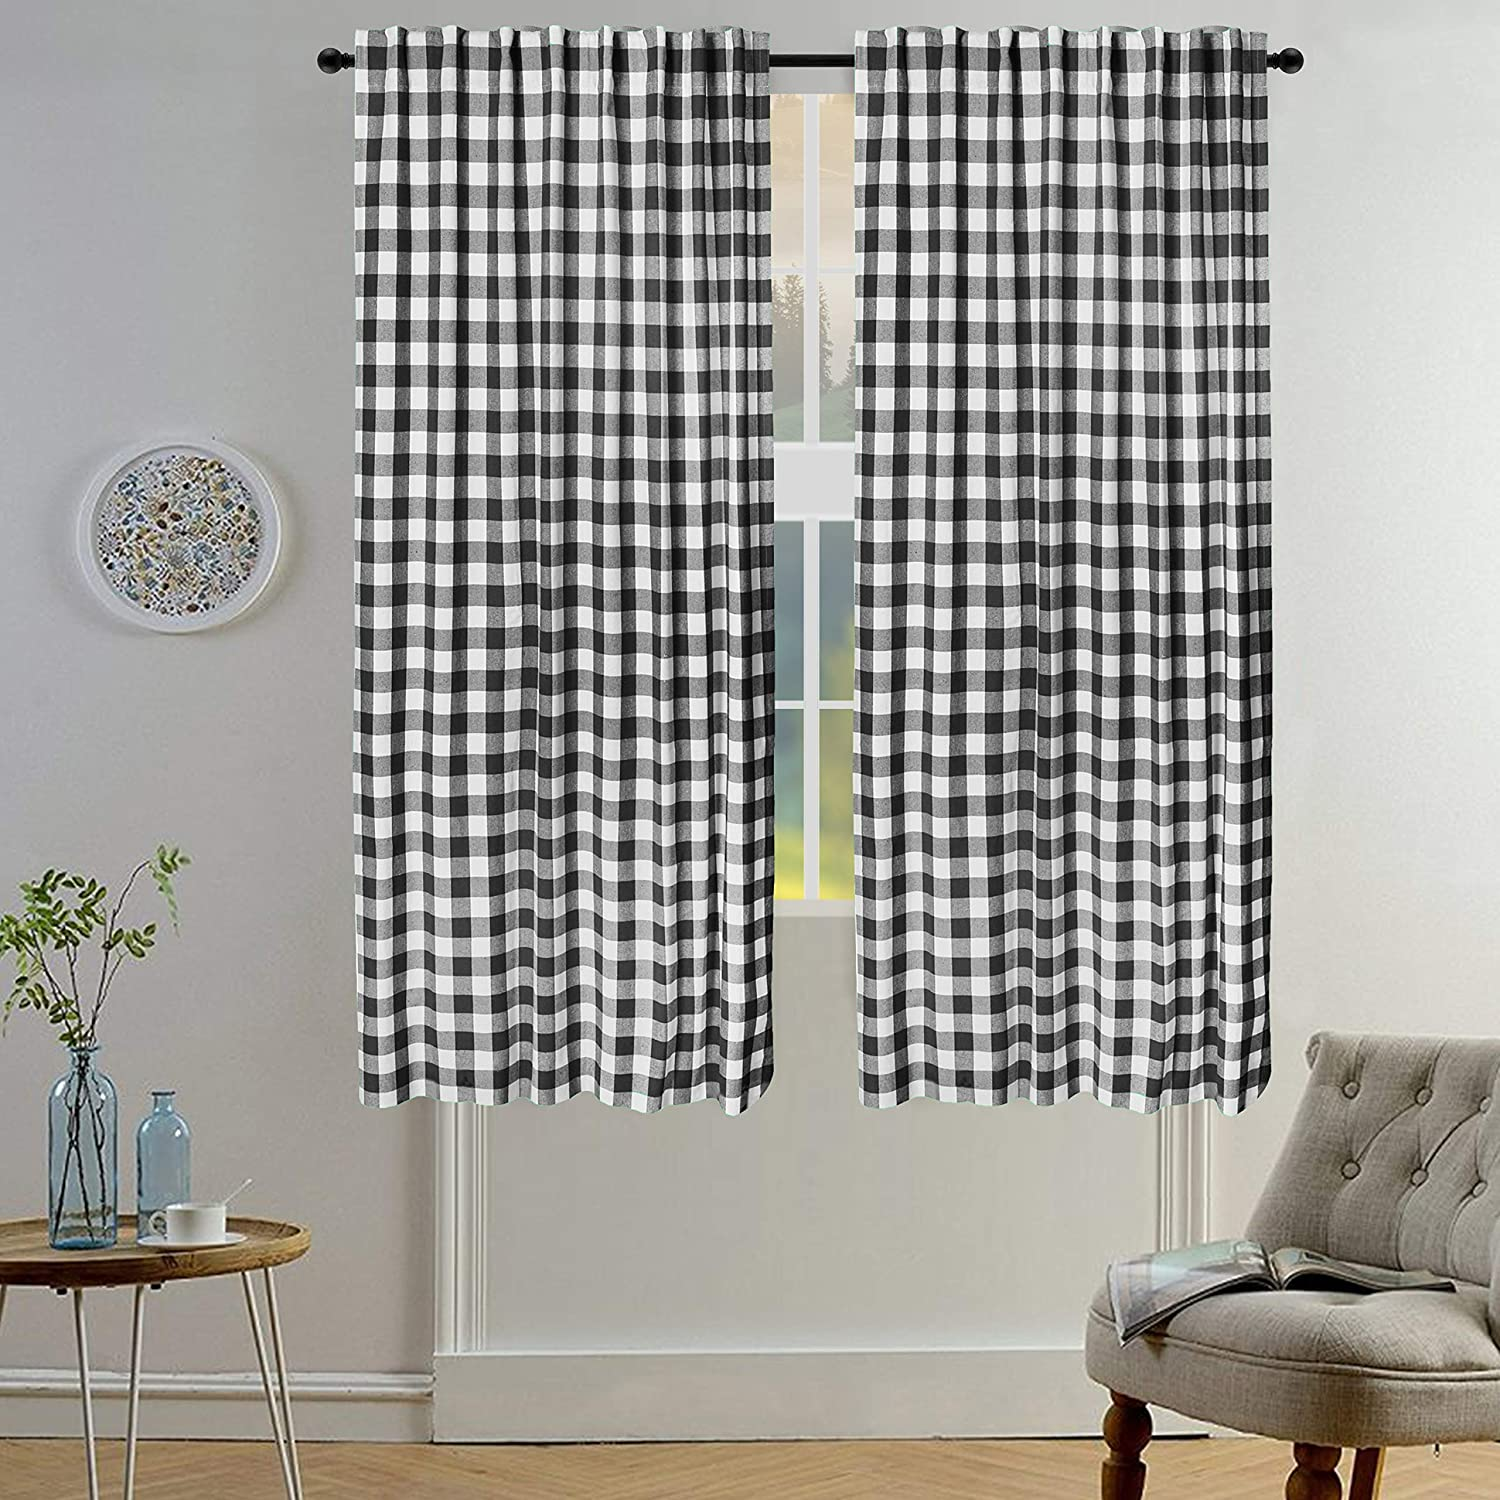 Gingham Check Curtain, Window Treatment Panels, Décor Panel, Nursery Curtain, Farmhouse Curtain, Kitchen Curtain, Bathroom Curtain, Living Room Curtain - 50x63 Inch - Black White - Set of 2 Panels